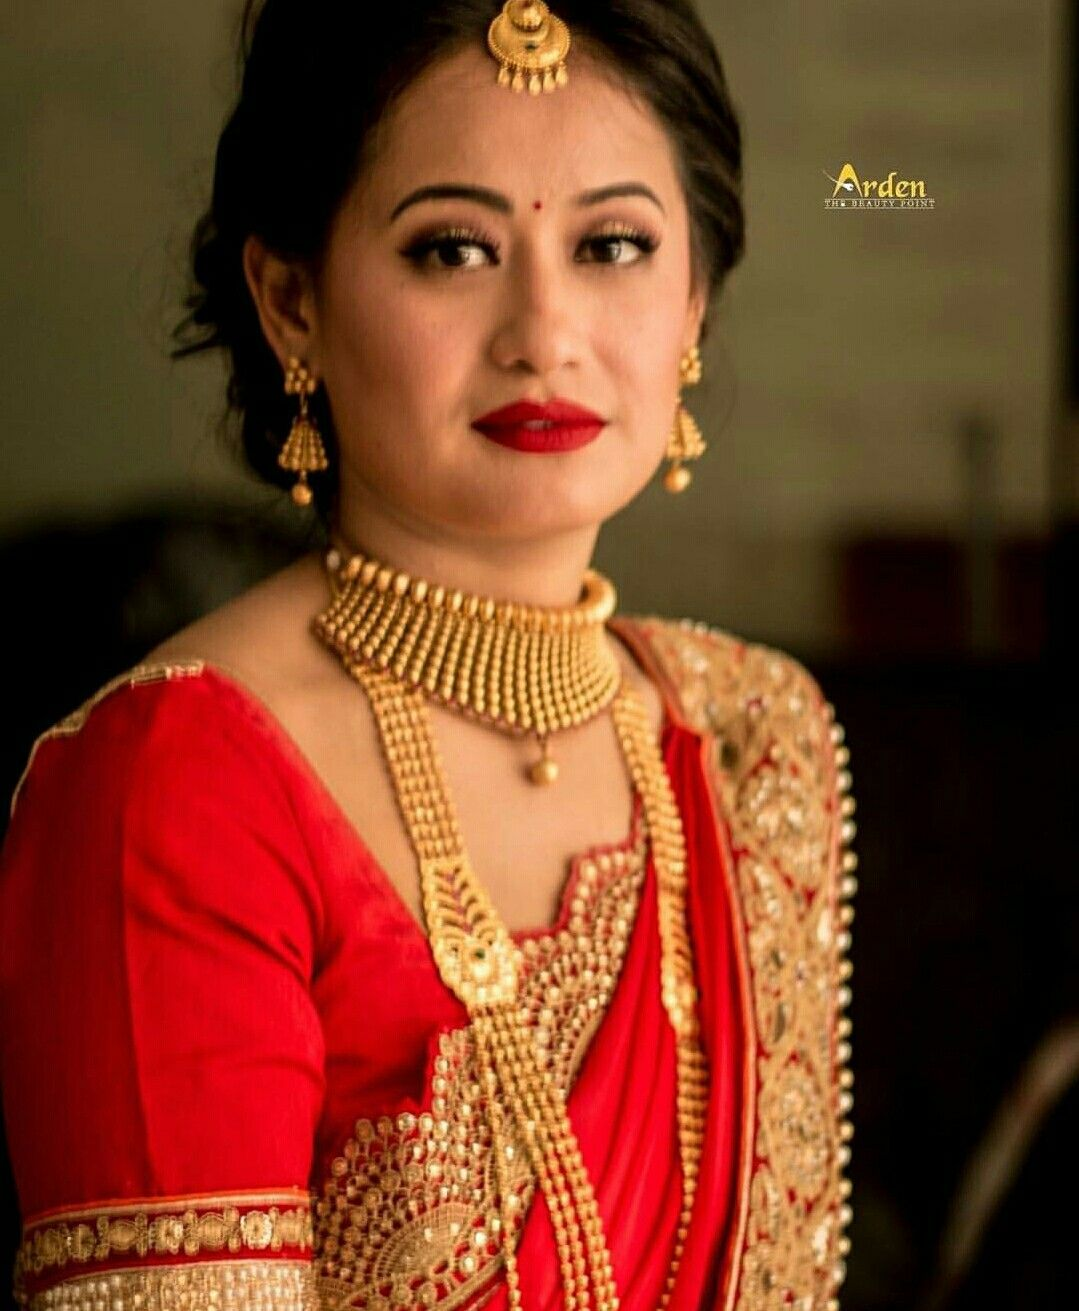 nepali wedding tradition nepal marriage bride makeup simple Nepali Wedding Jewellery nepali wedding tradition nepal marriage bride makeup simple nepali wedding jewellery